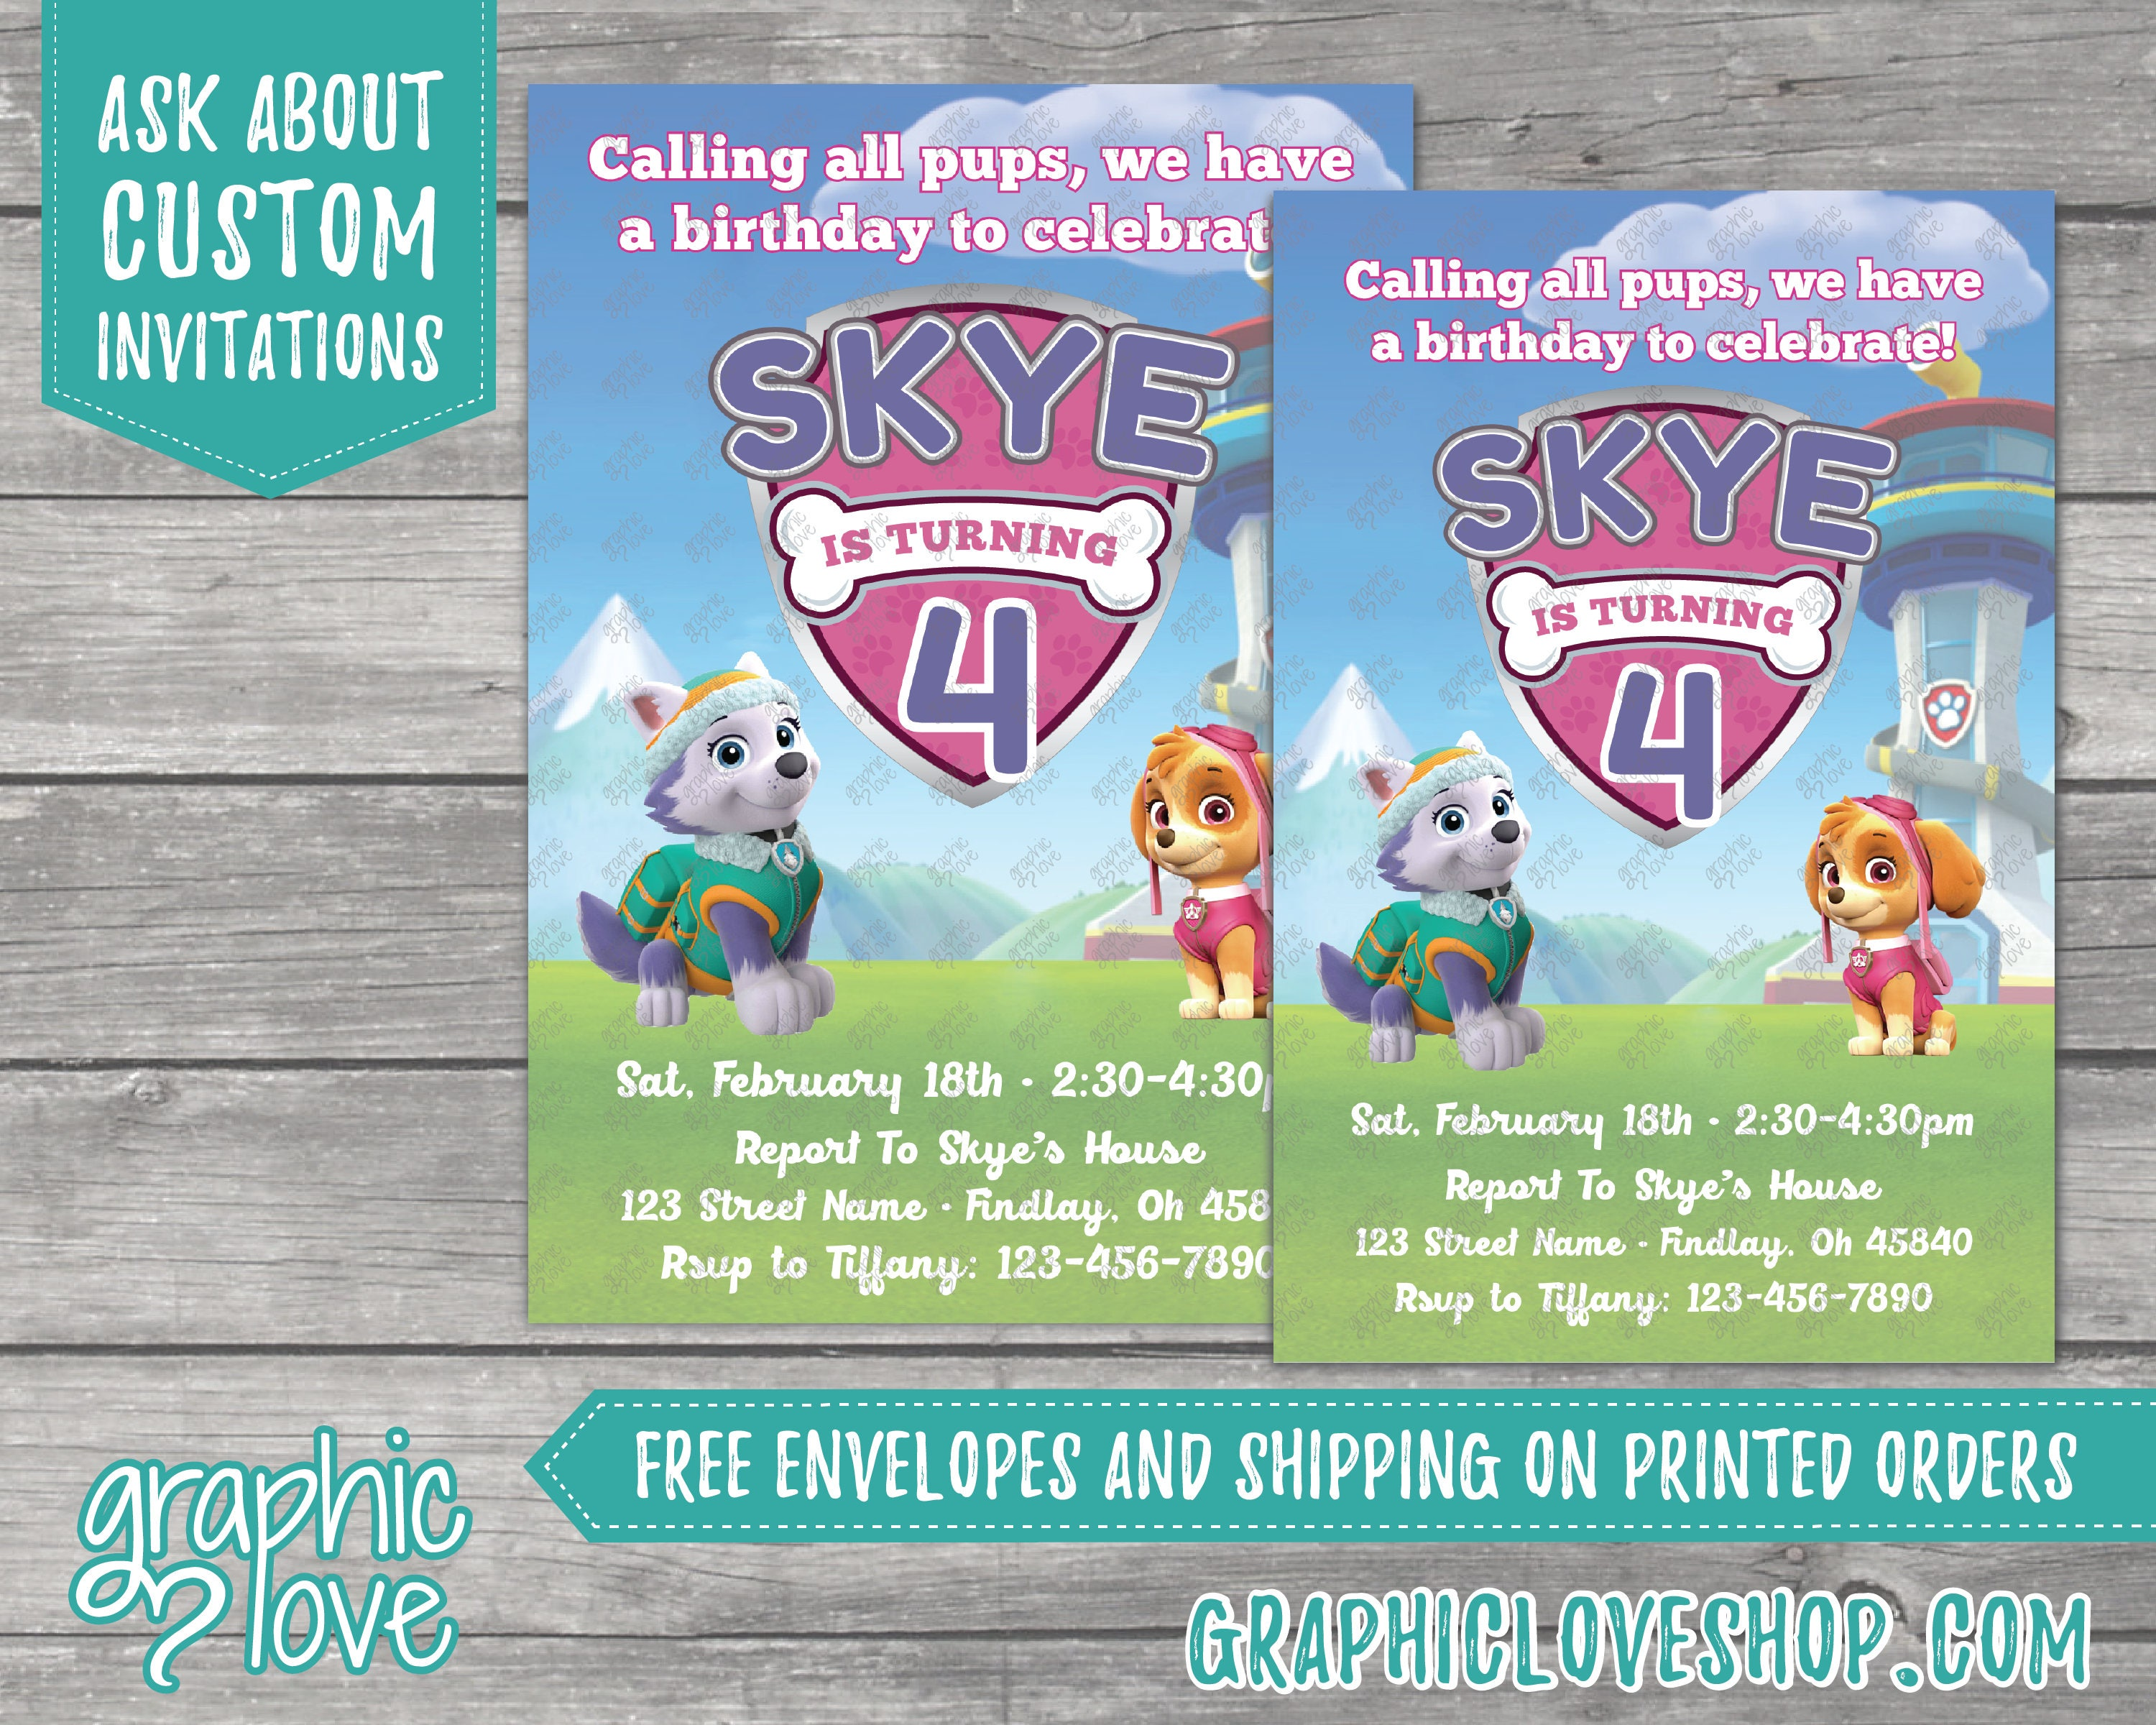 Paw patrol skye and everest personalized birthday invitations nick paw patrol skye and everest personalized birthday invitations nick junior 4x6 or 5x7 digital or printed free us shipping envelopes filmwisefo